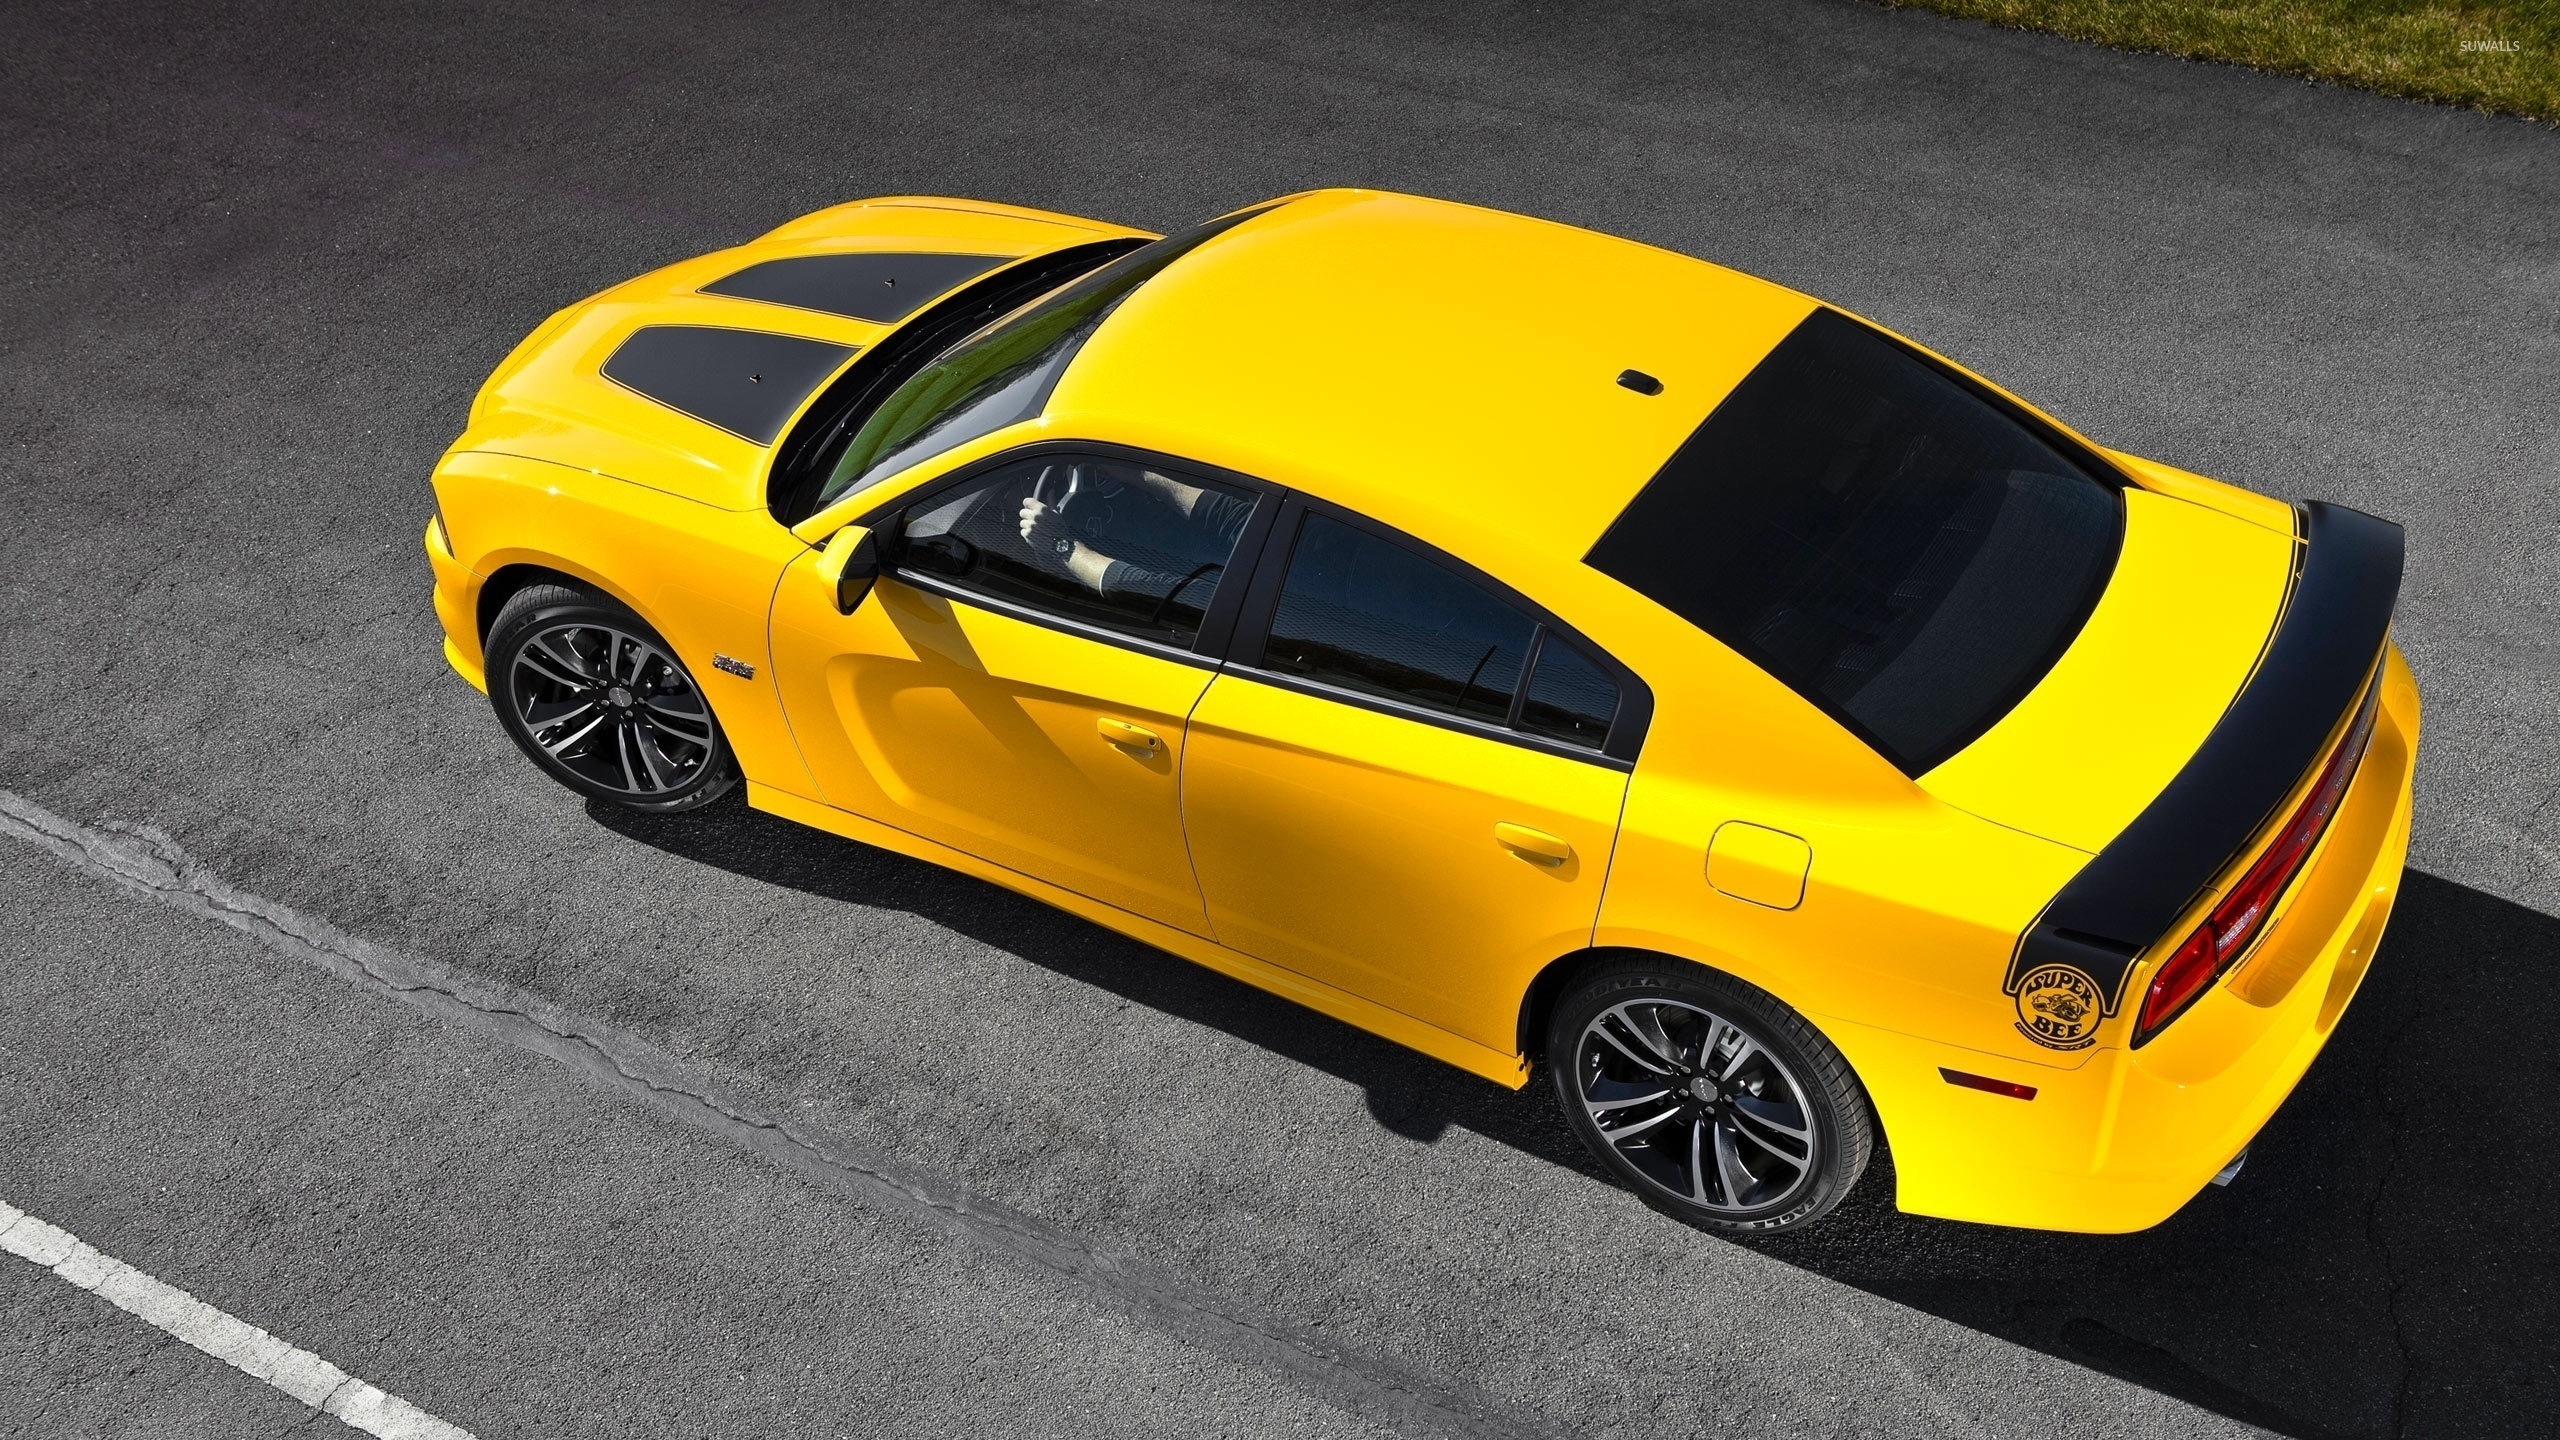 Top view of a Dodge Charger Super Bee wallpaper - Car wallpapers ...